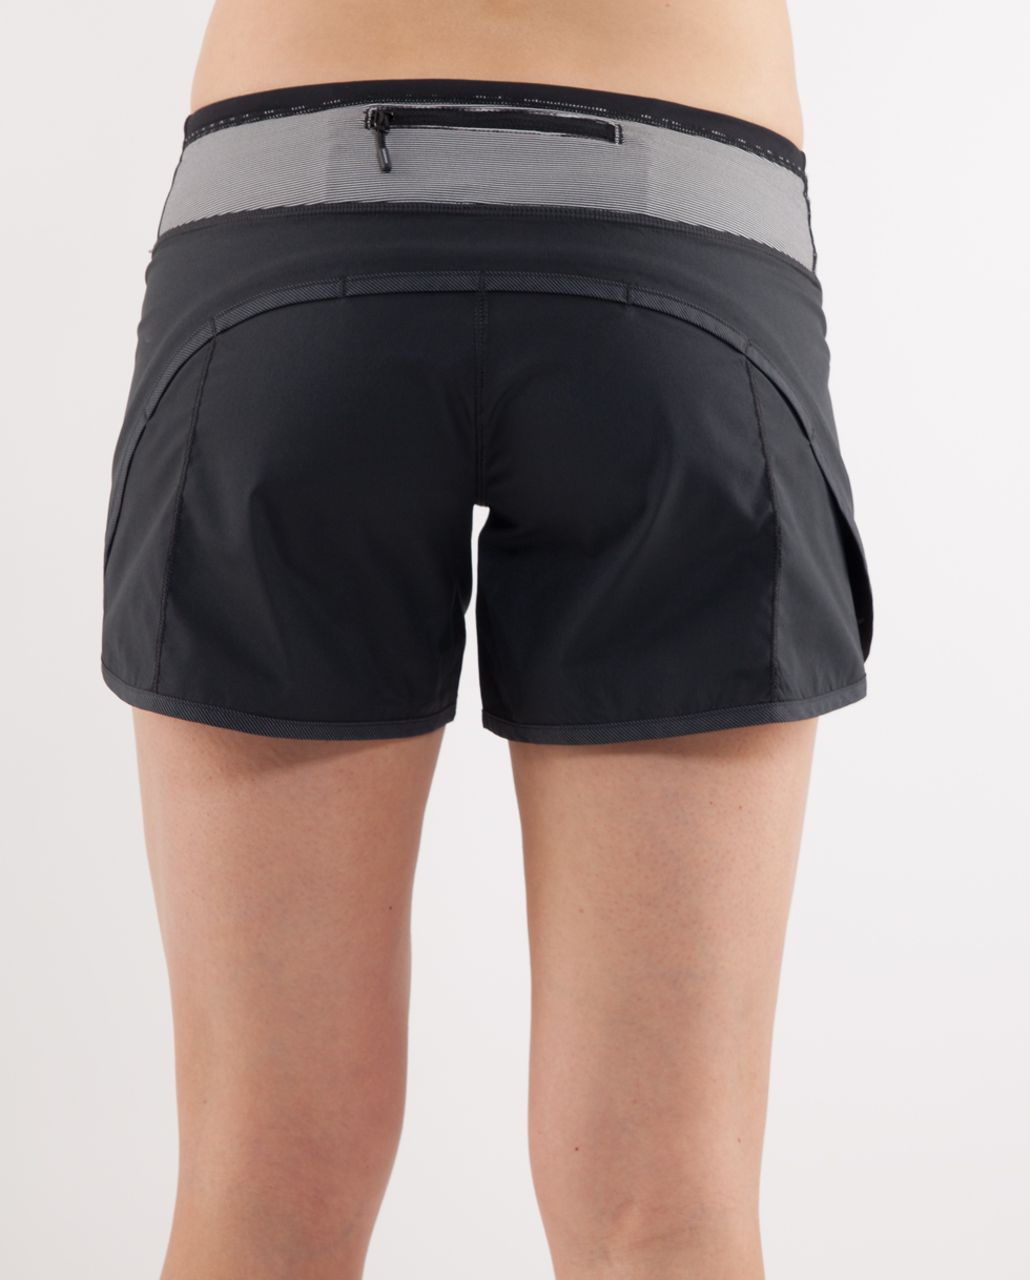 Lululemon Turbo Run Short - Black /  White Black Microstripe